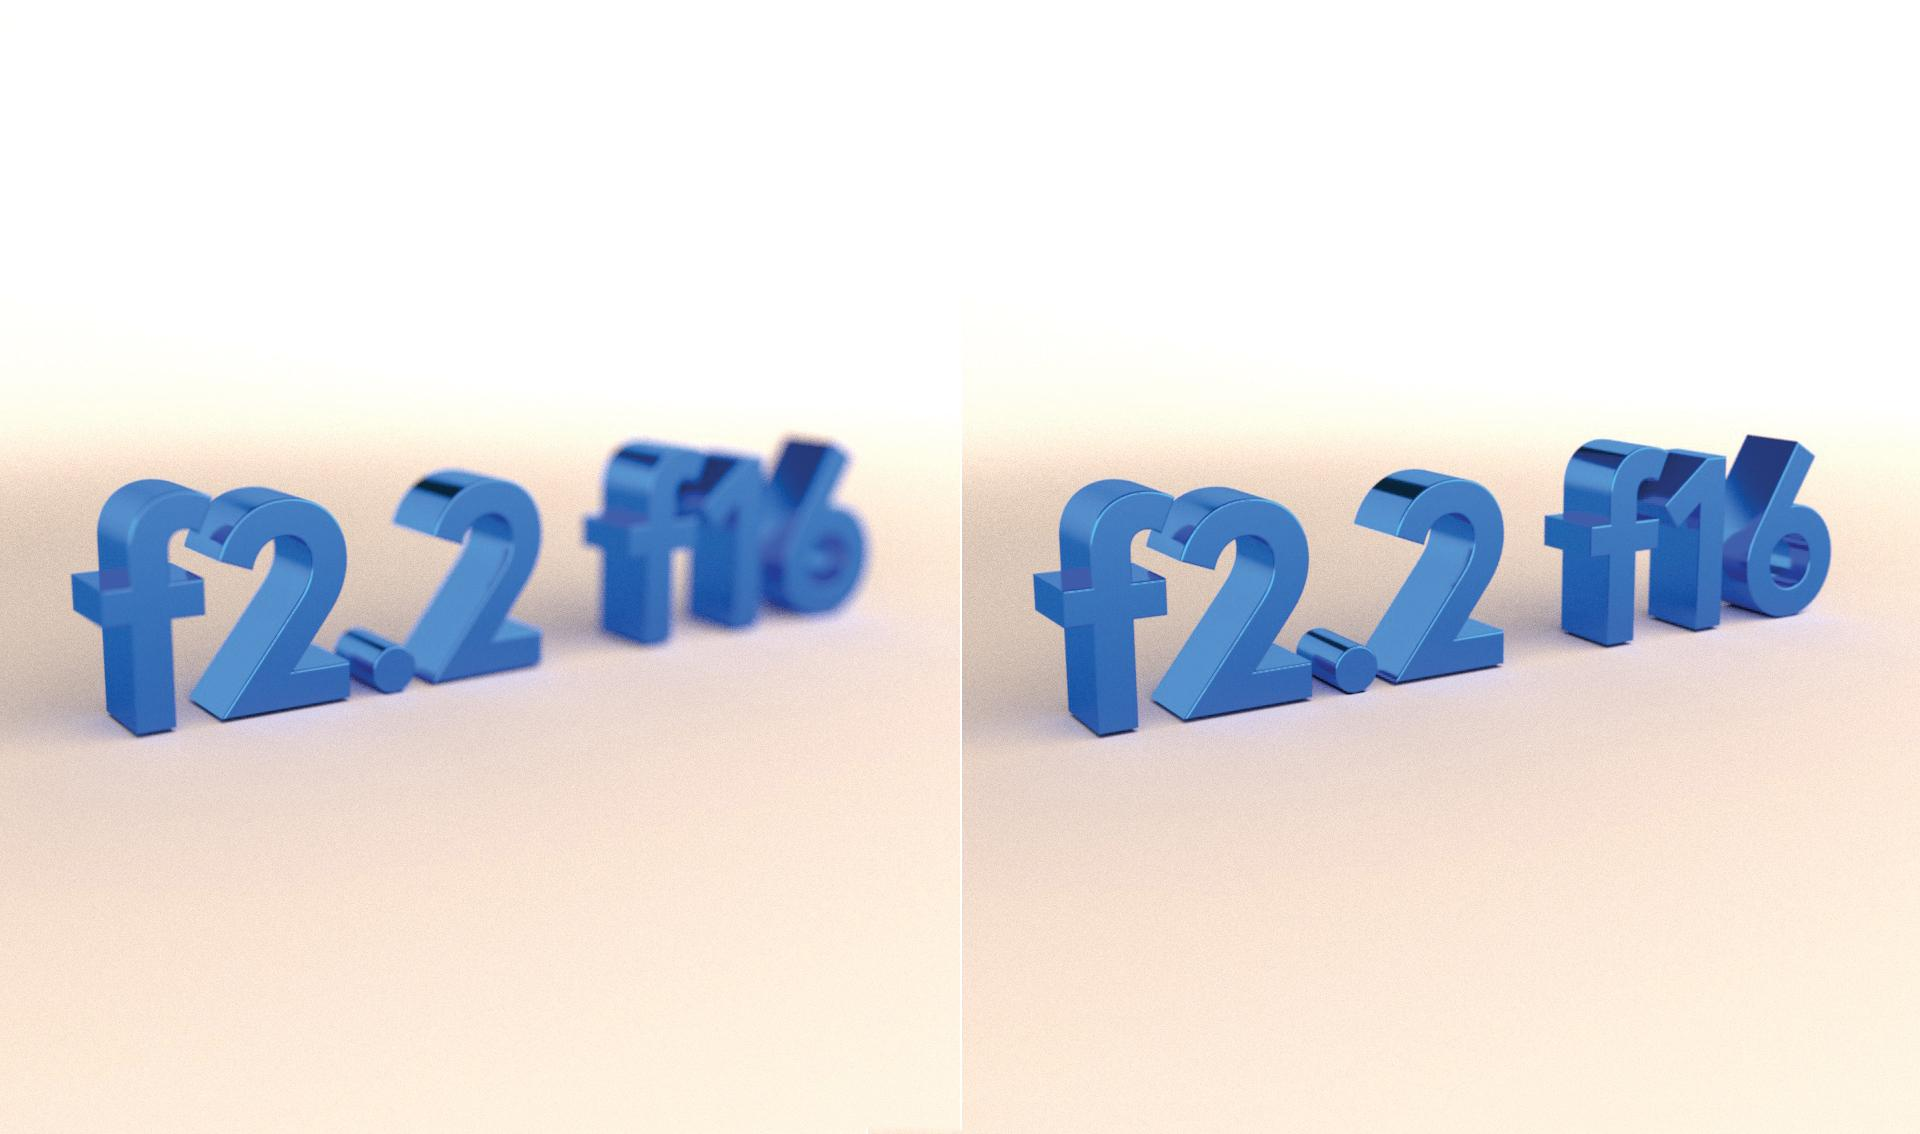 f2.2 and f16 written as text